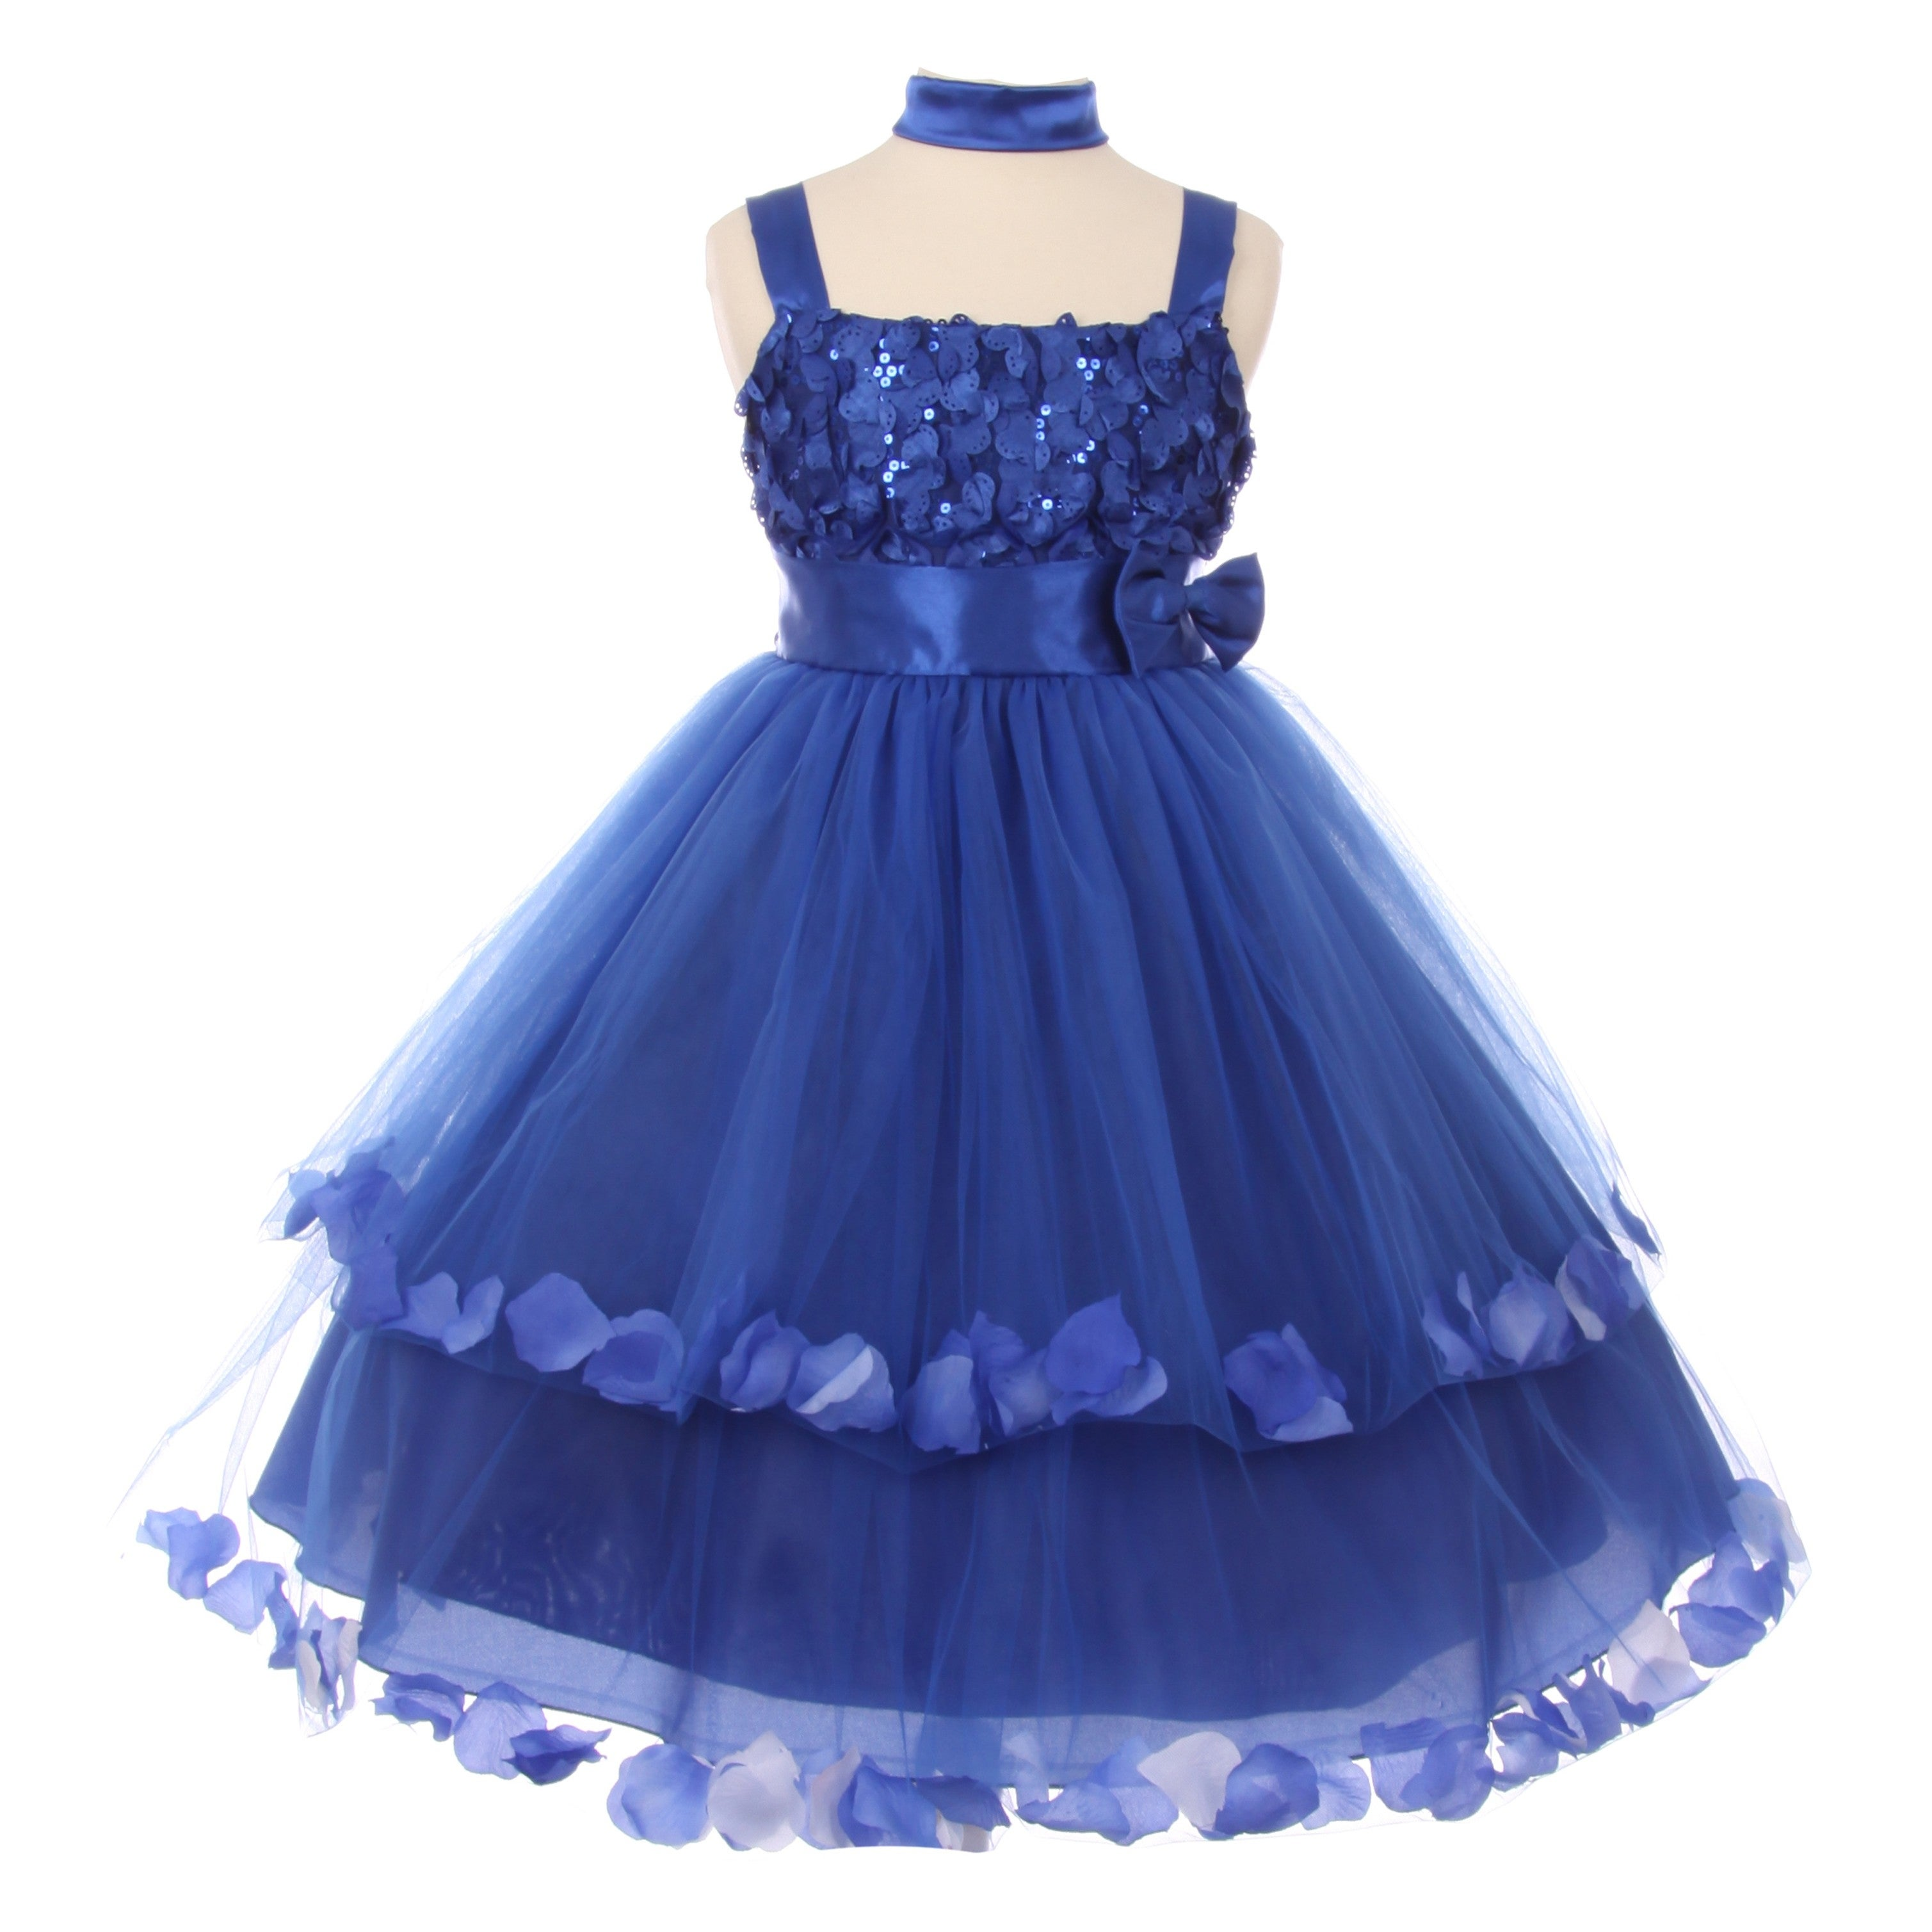 799571a02ca Shop Little Girls Royal Blue Sequin Floating Petals Flower Girl Occasion  Dress - Free Shipping Today - Overstock - 18163100